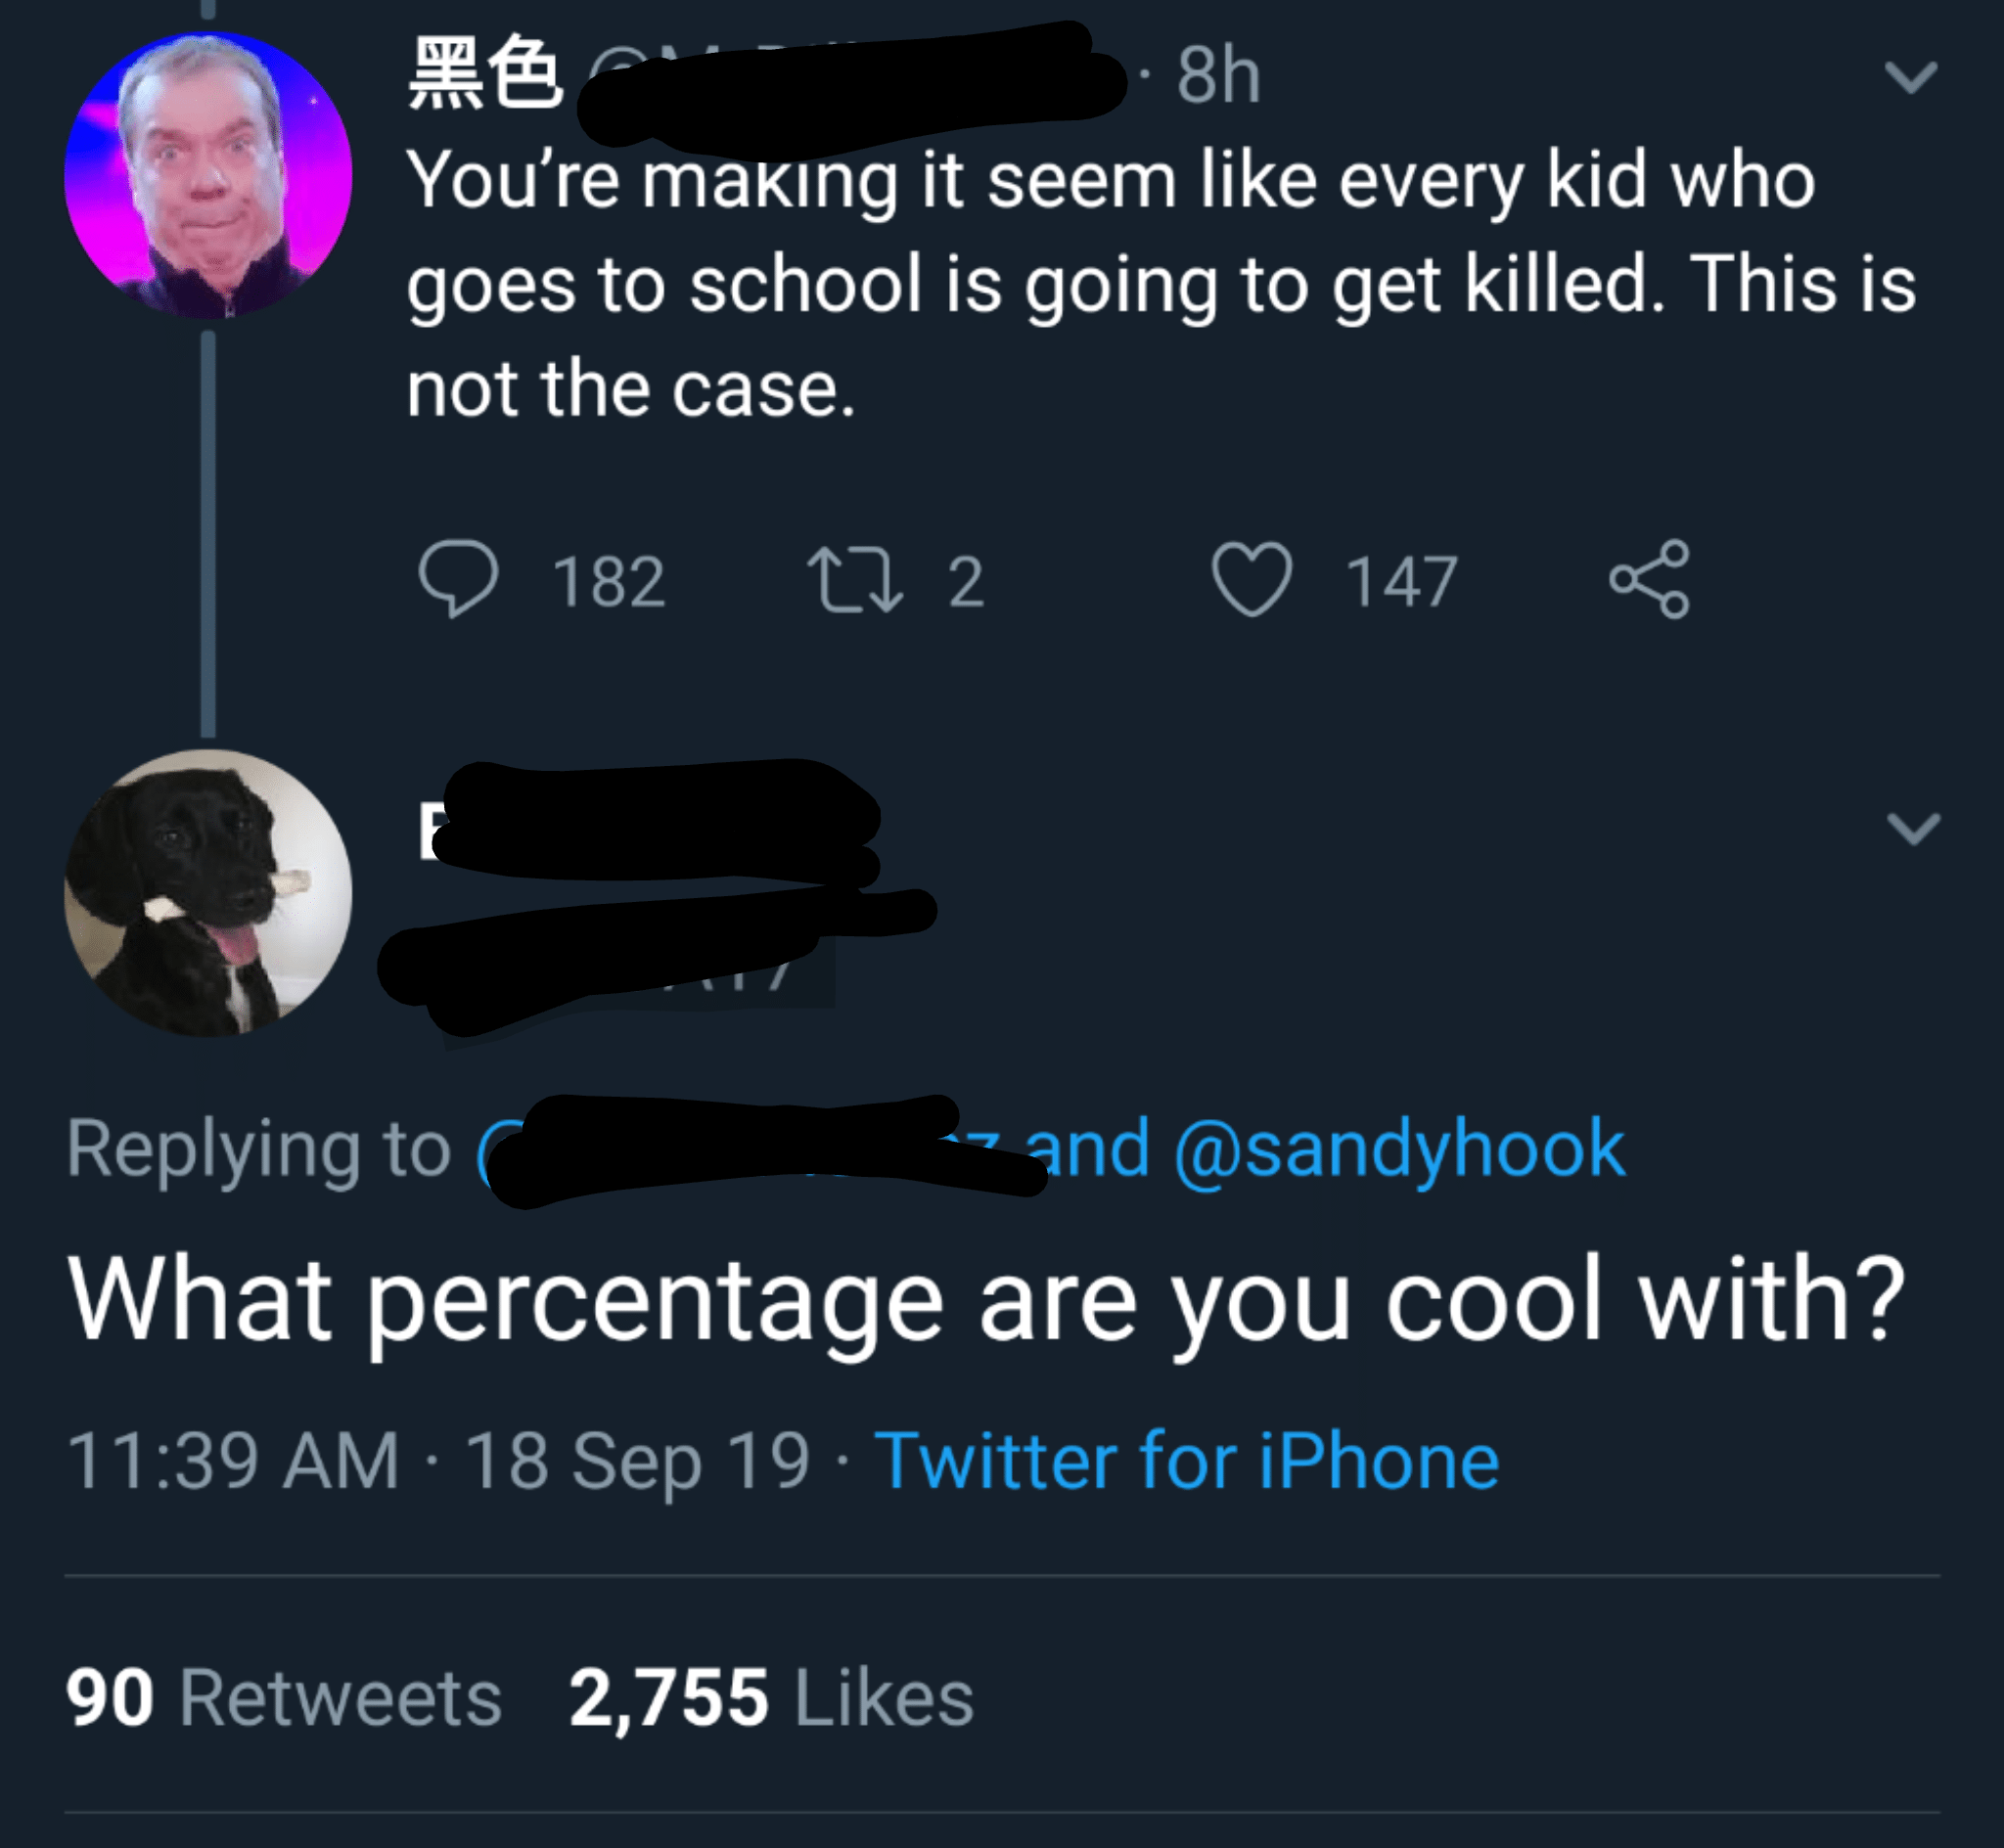 political political-memes political text: You're maKlng it seem like every kid who goes to school is going to get killed. This is not the case. 0 182 2 Replying to C 0 147 and @sandyhook What percentage are you cool with? 11:39 AM • 18 Sep 19 • Twitter for iPhone Likes 90 Retweets 2,755